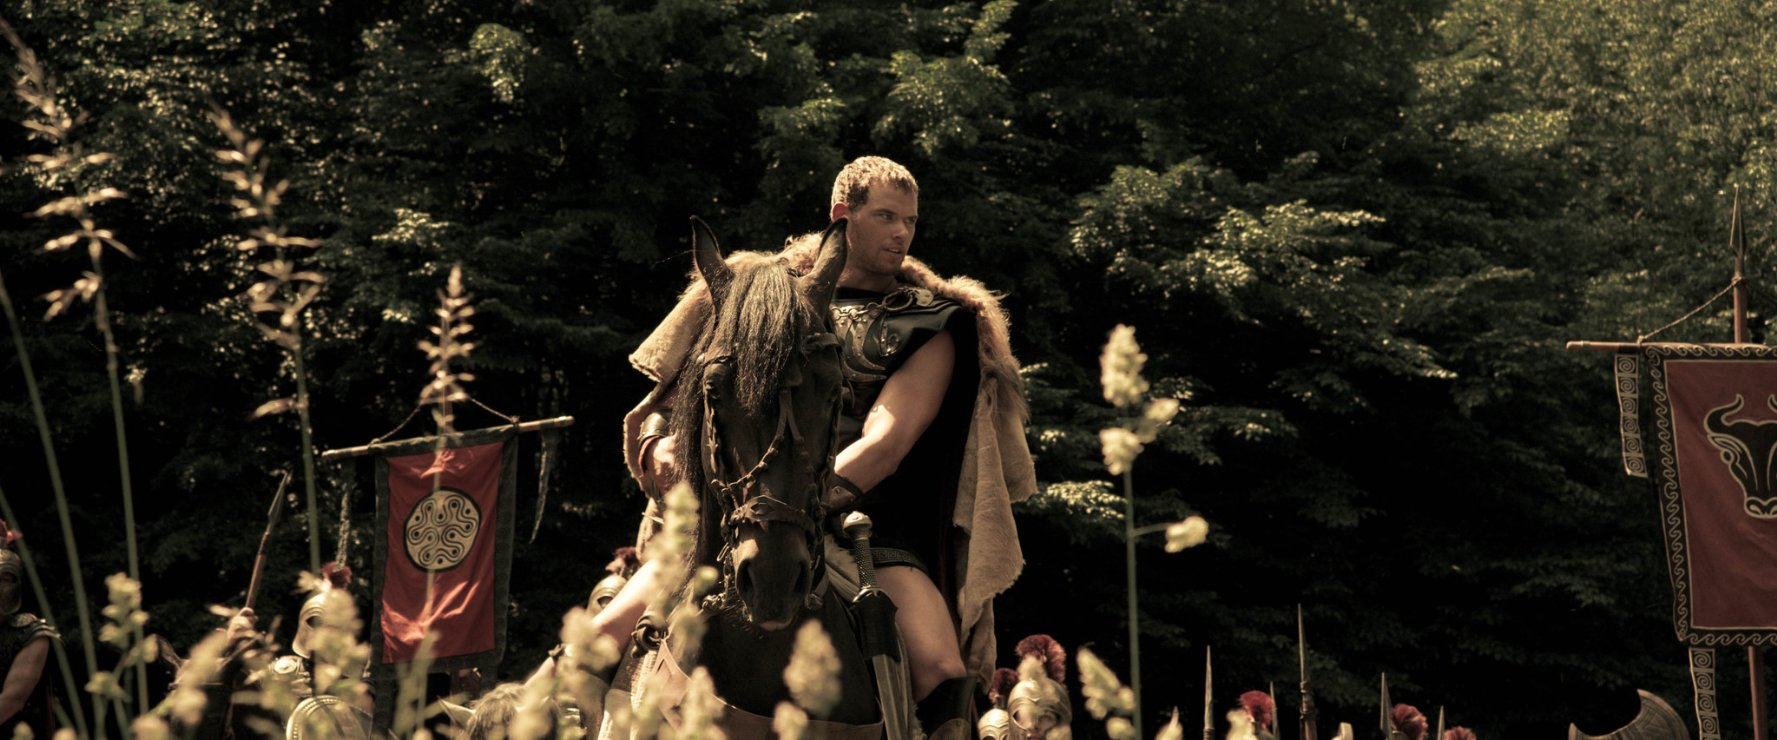 The Legend Of Hercules 2014 Watch Online On 123Movies